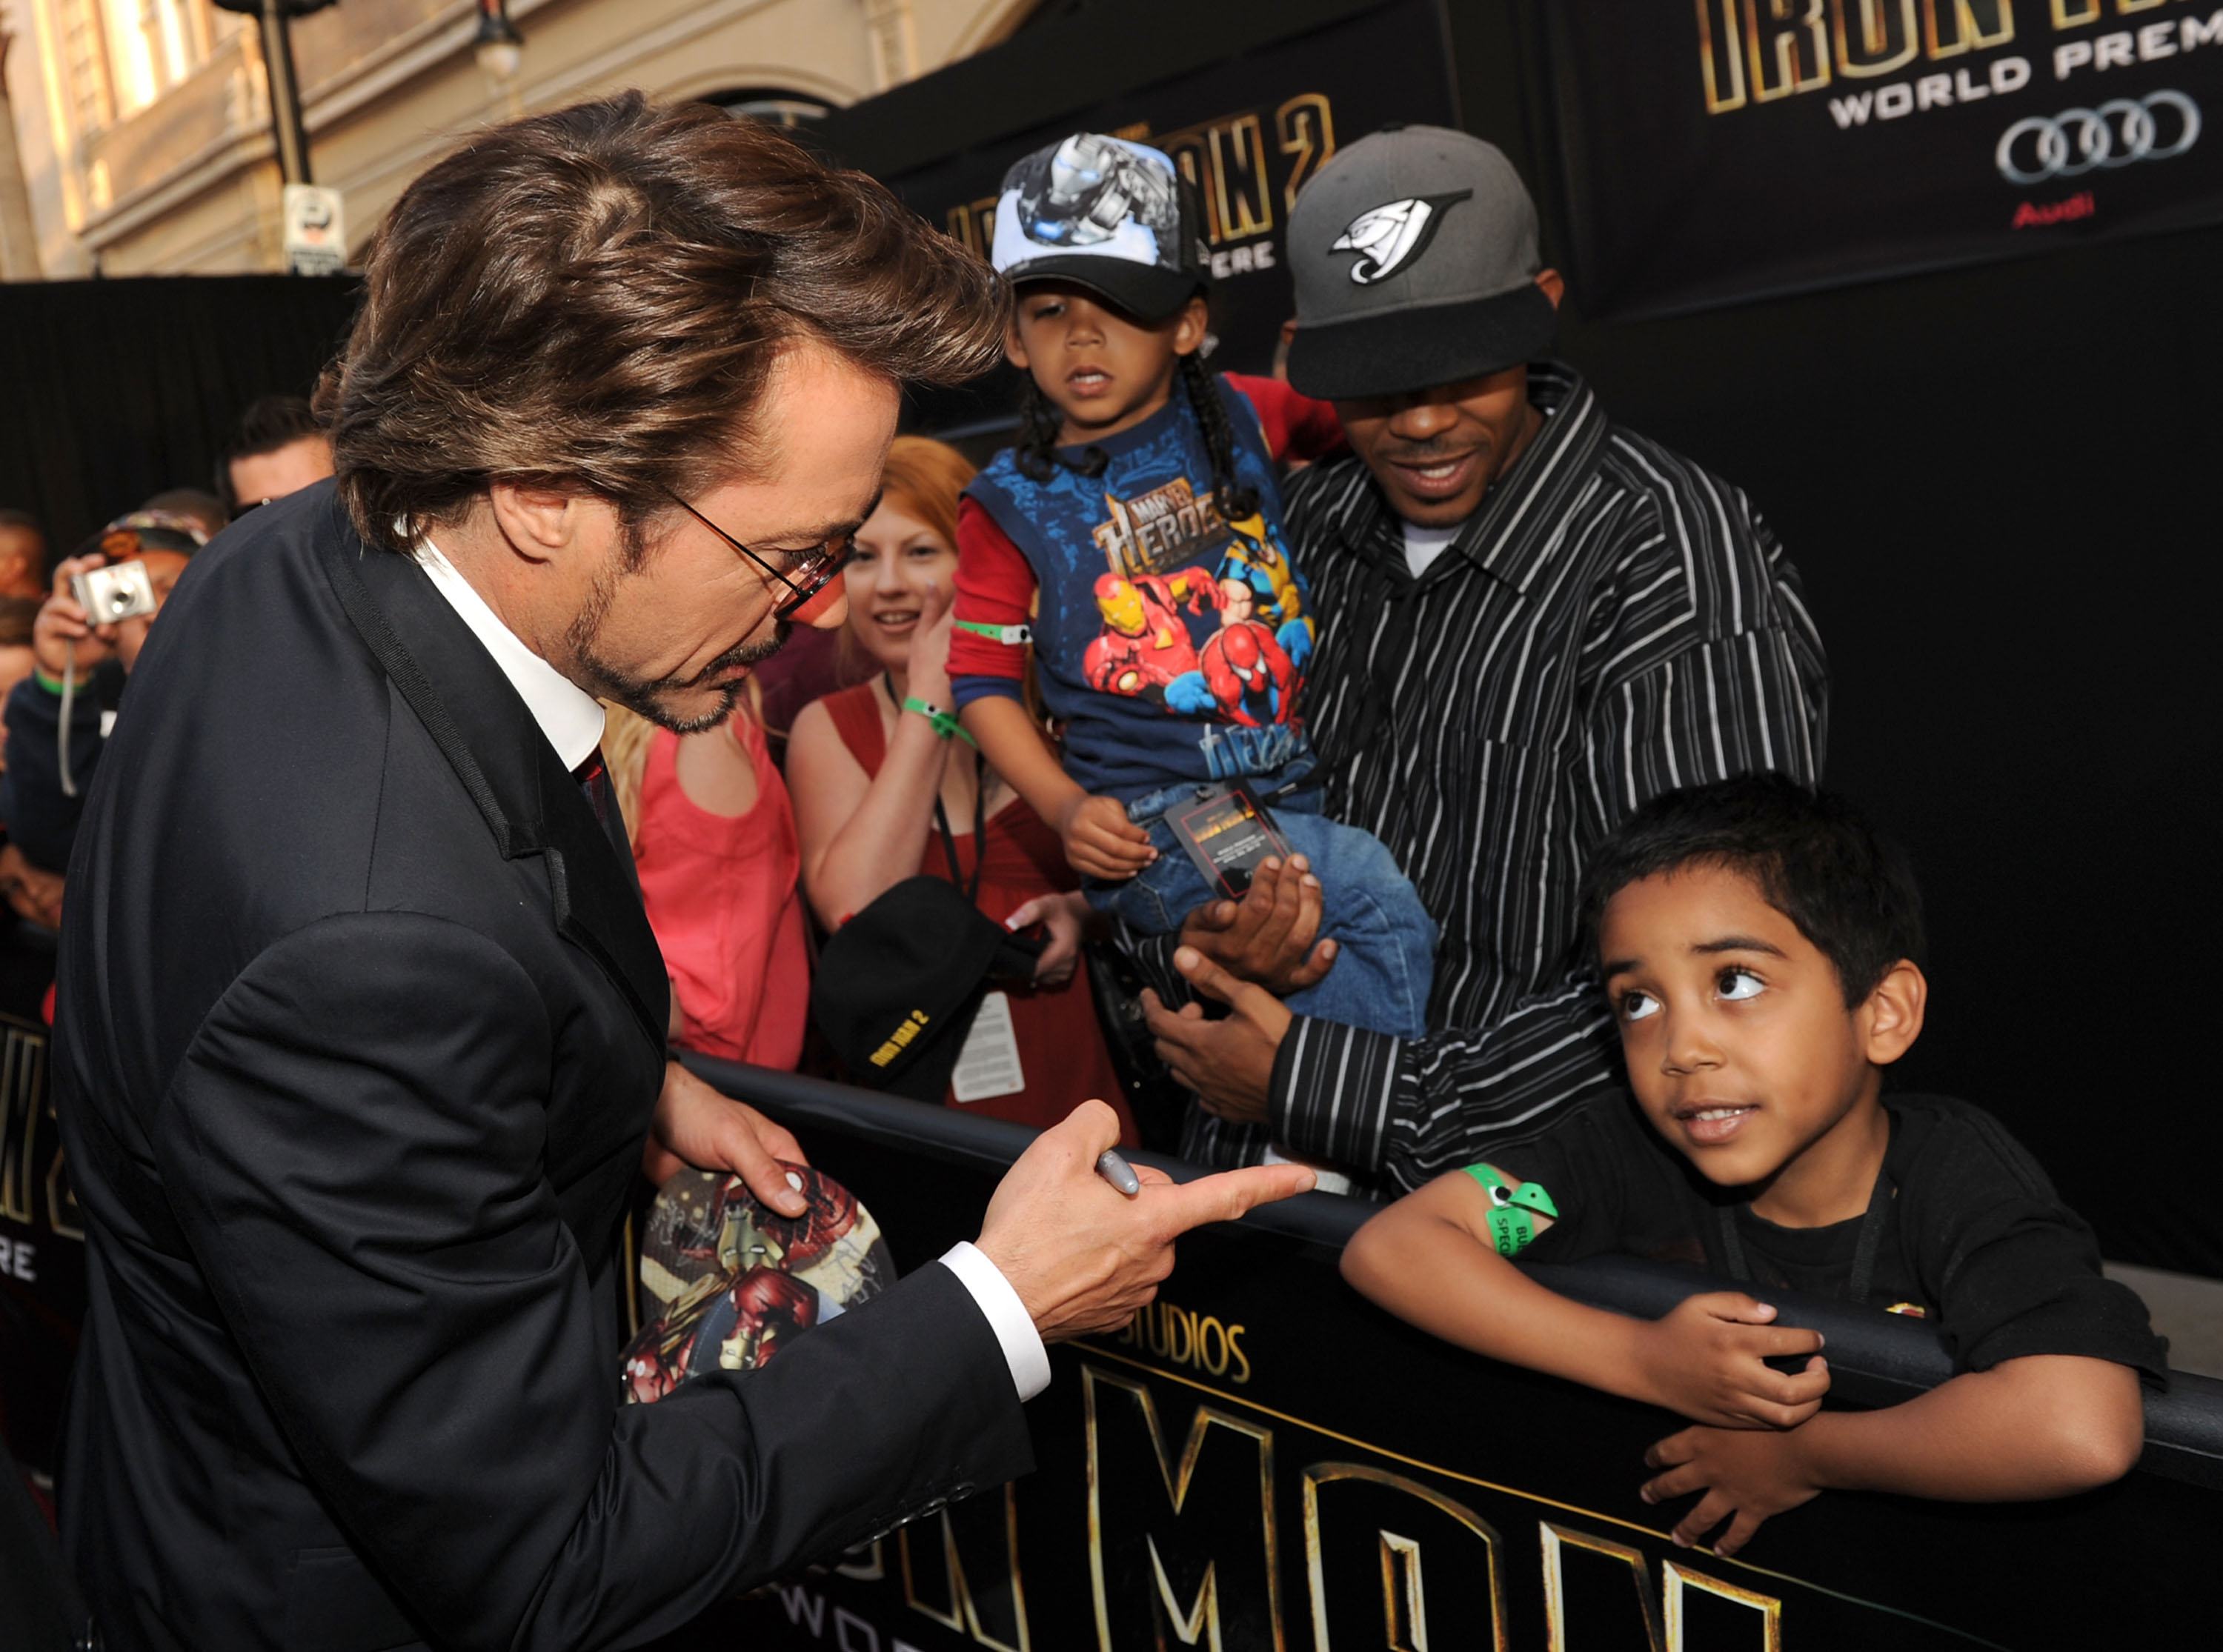 HOLLYWOOD - APRIL 26: Actor Robert Downey Jr. arrives at the world premiere of Paramount Pictures and Marvel Entertainment's Iron Man 2 held at El Capitan Theatre on April 26, 2010 in Hollywood, California.